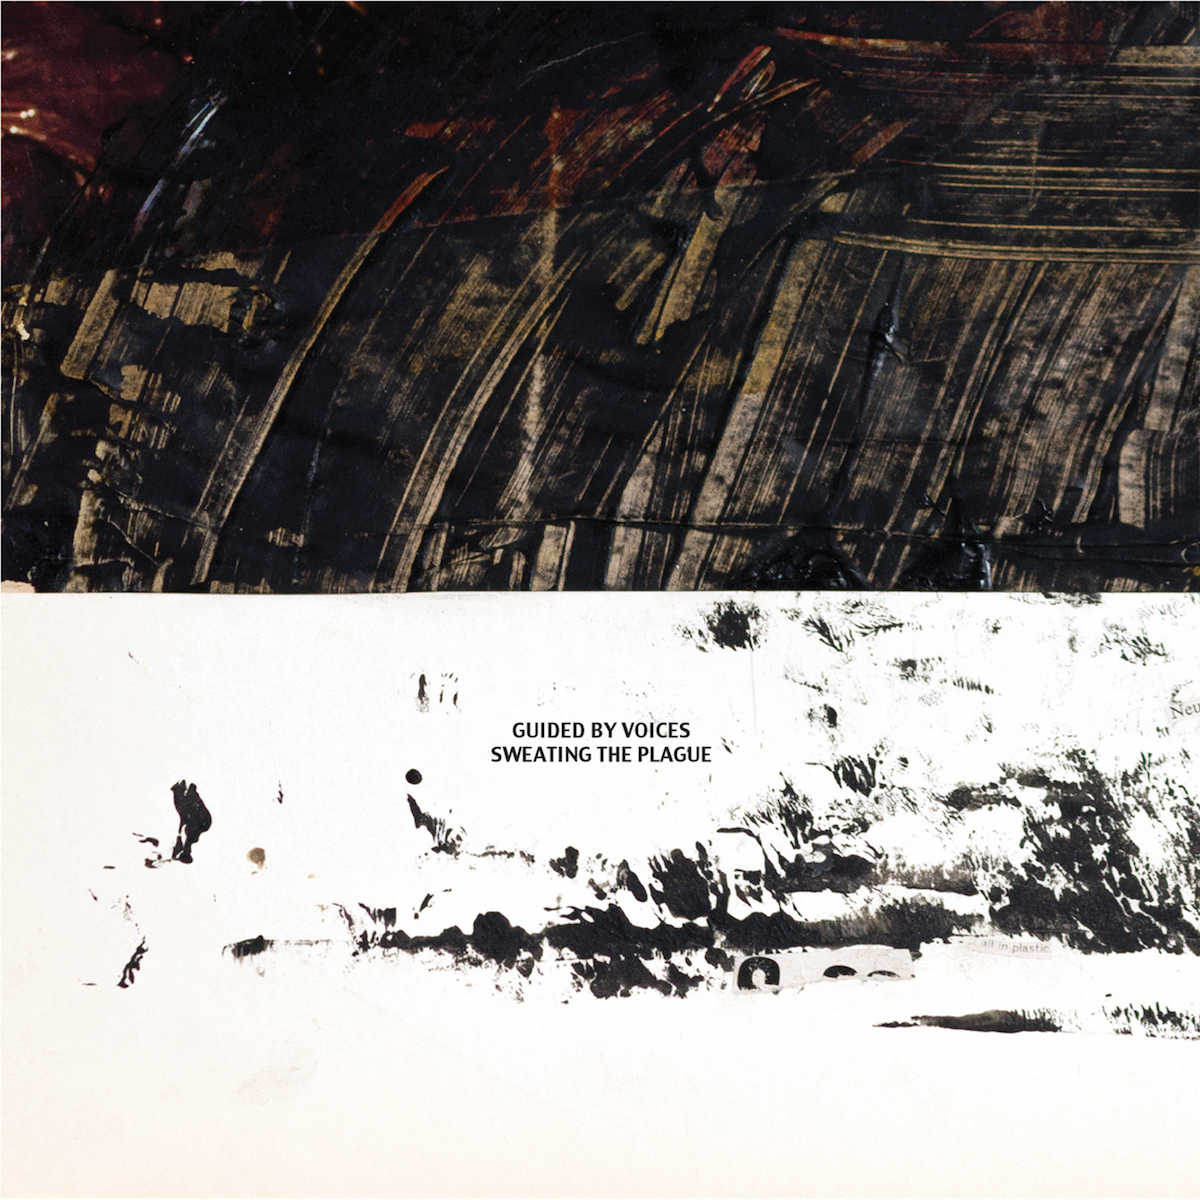 Guided by Voices Sweating the Plague track by track album artwork stream cover